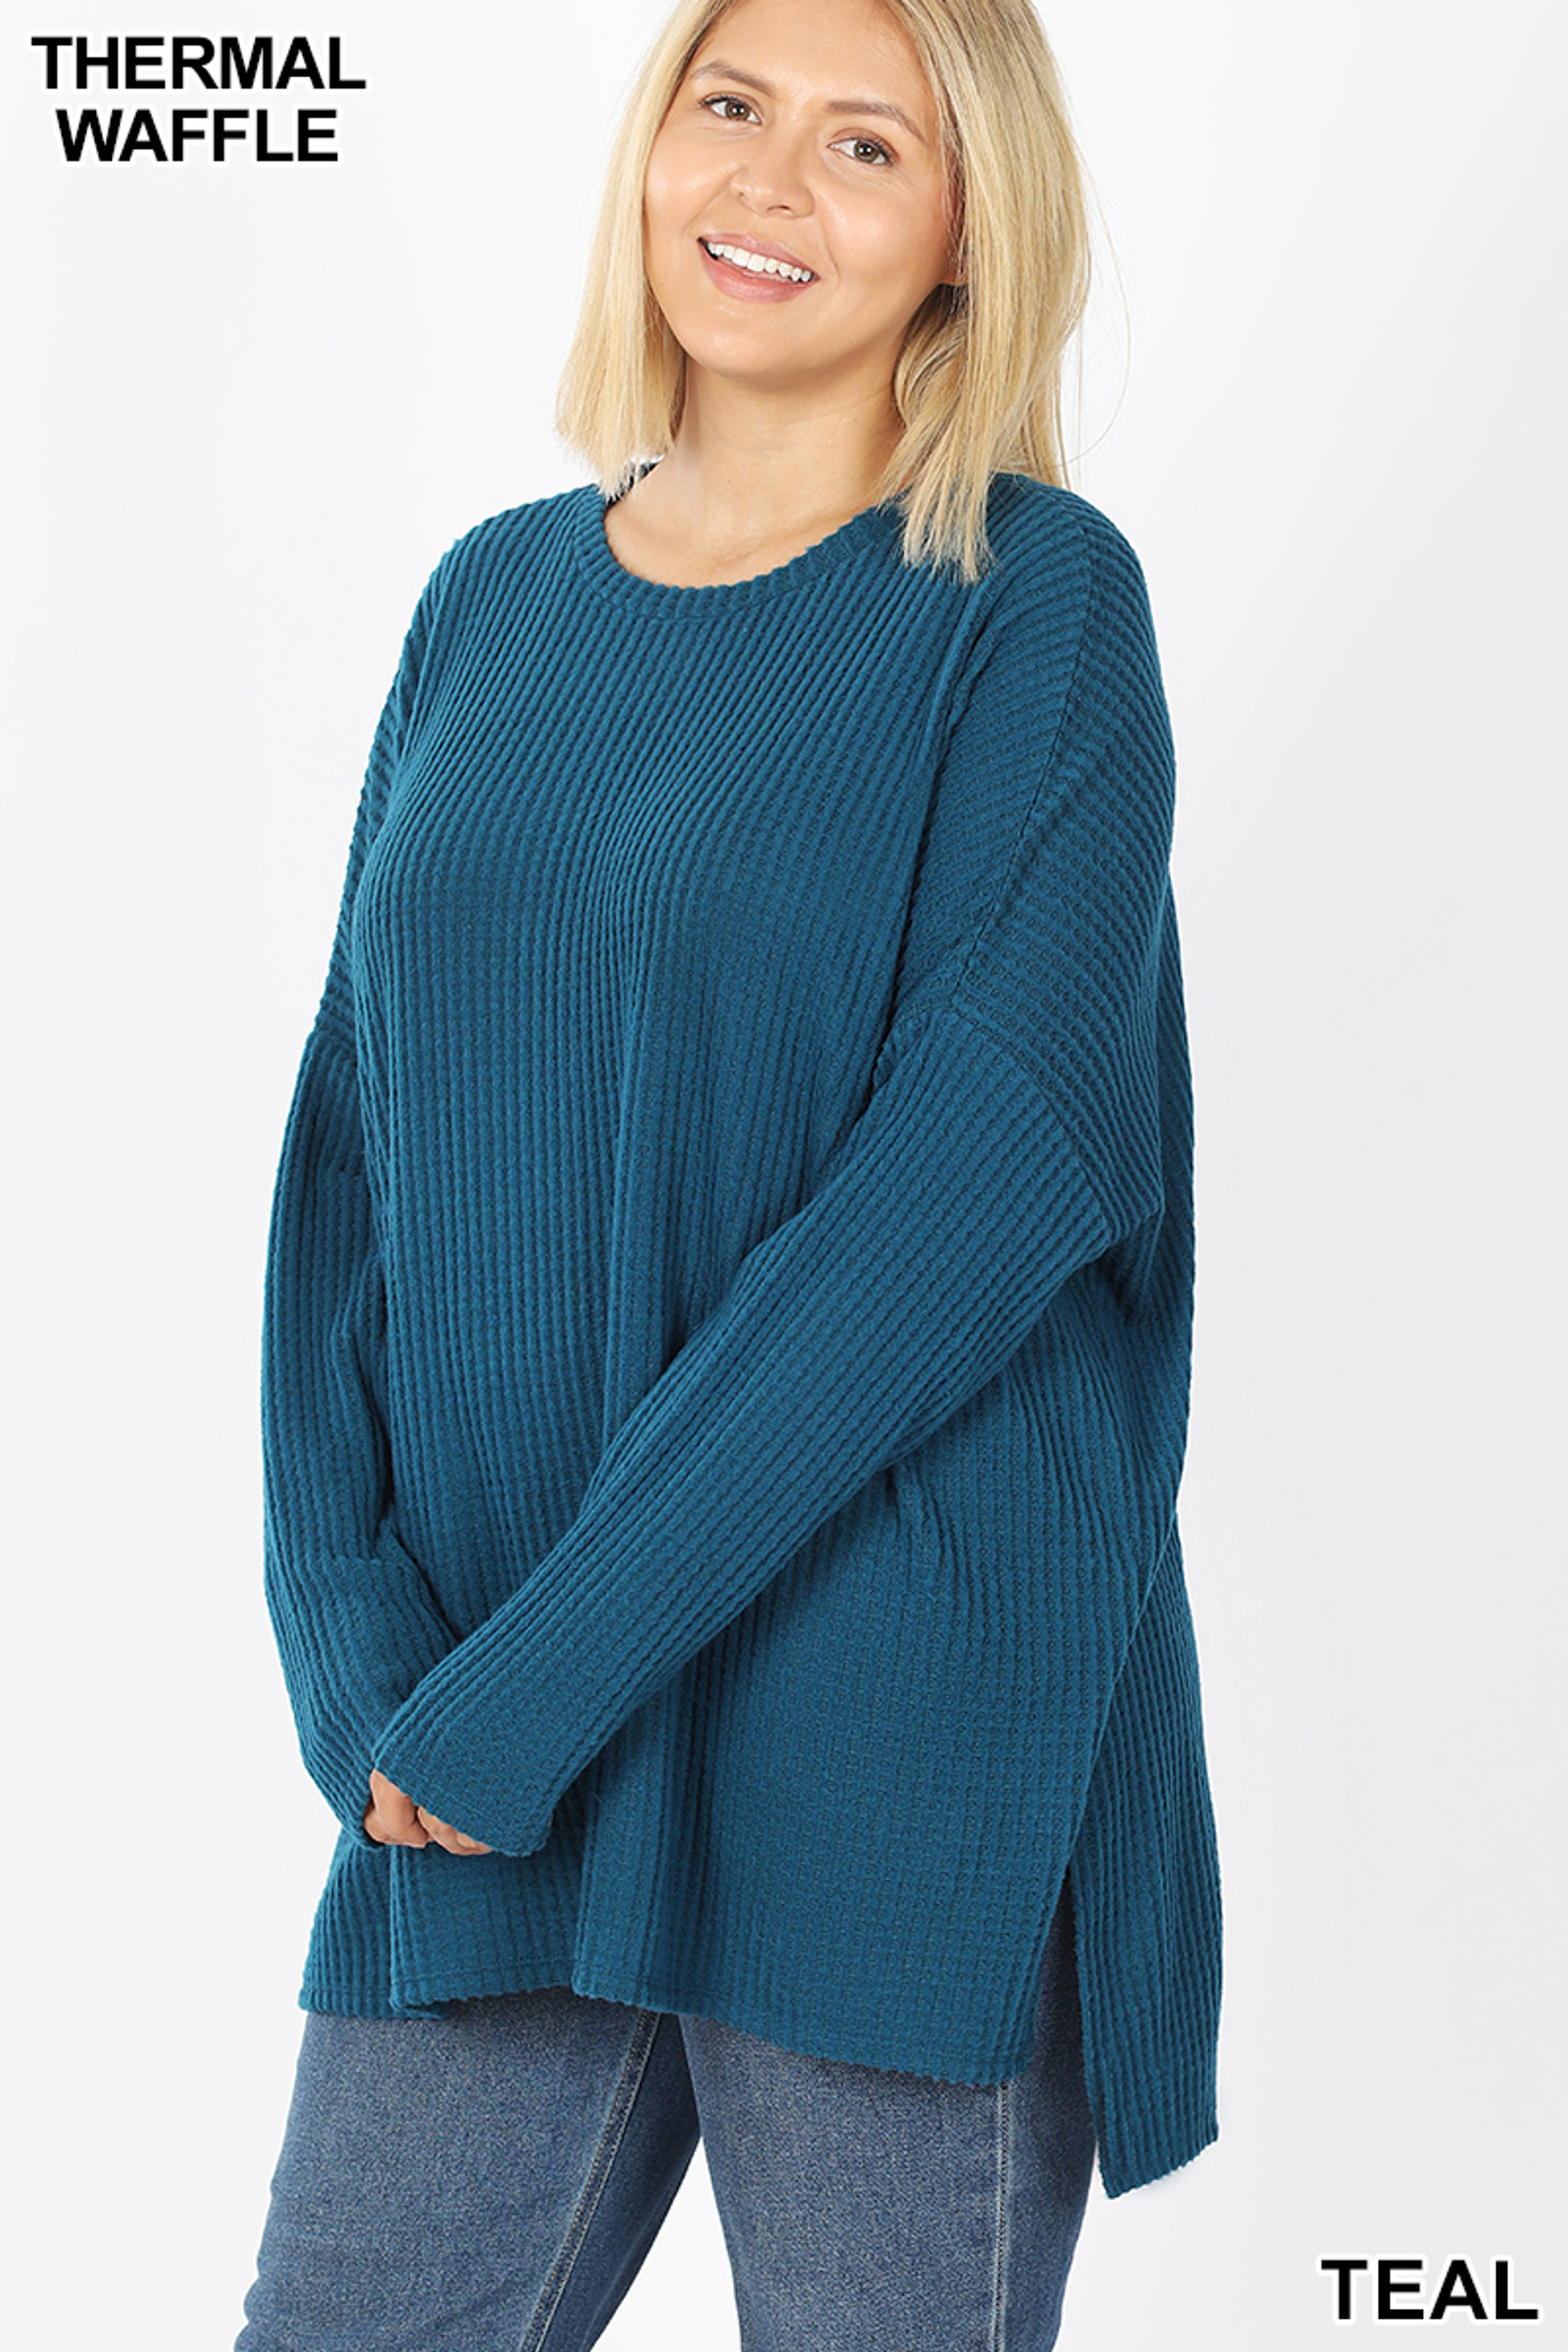 45 degree view of Teal Brushed Thermal Waffle Knit Round Neck Hi-Low Plus Size Sweater